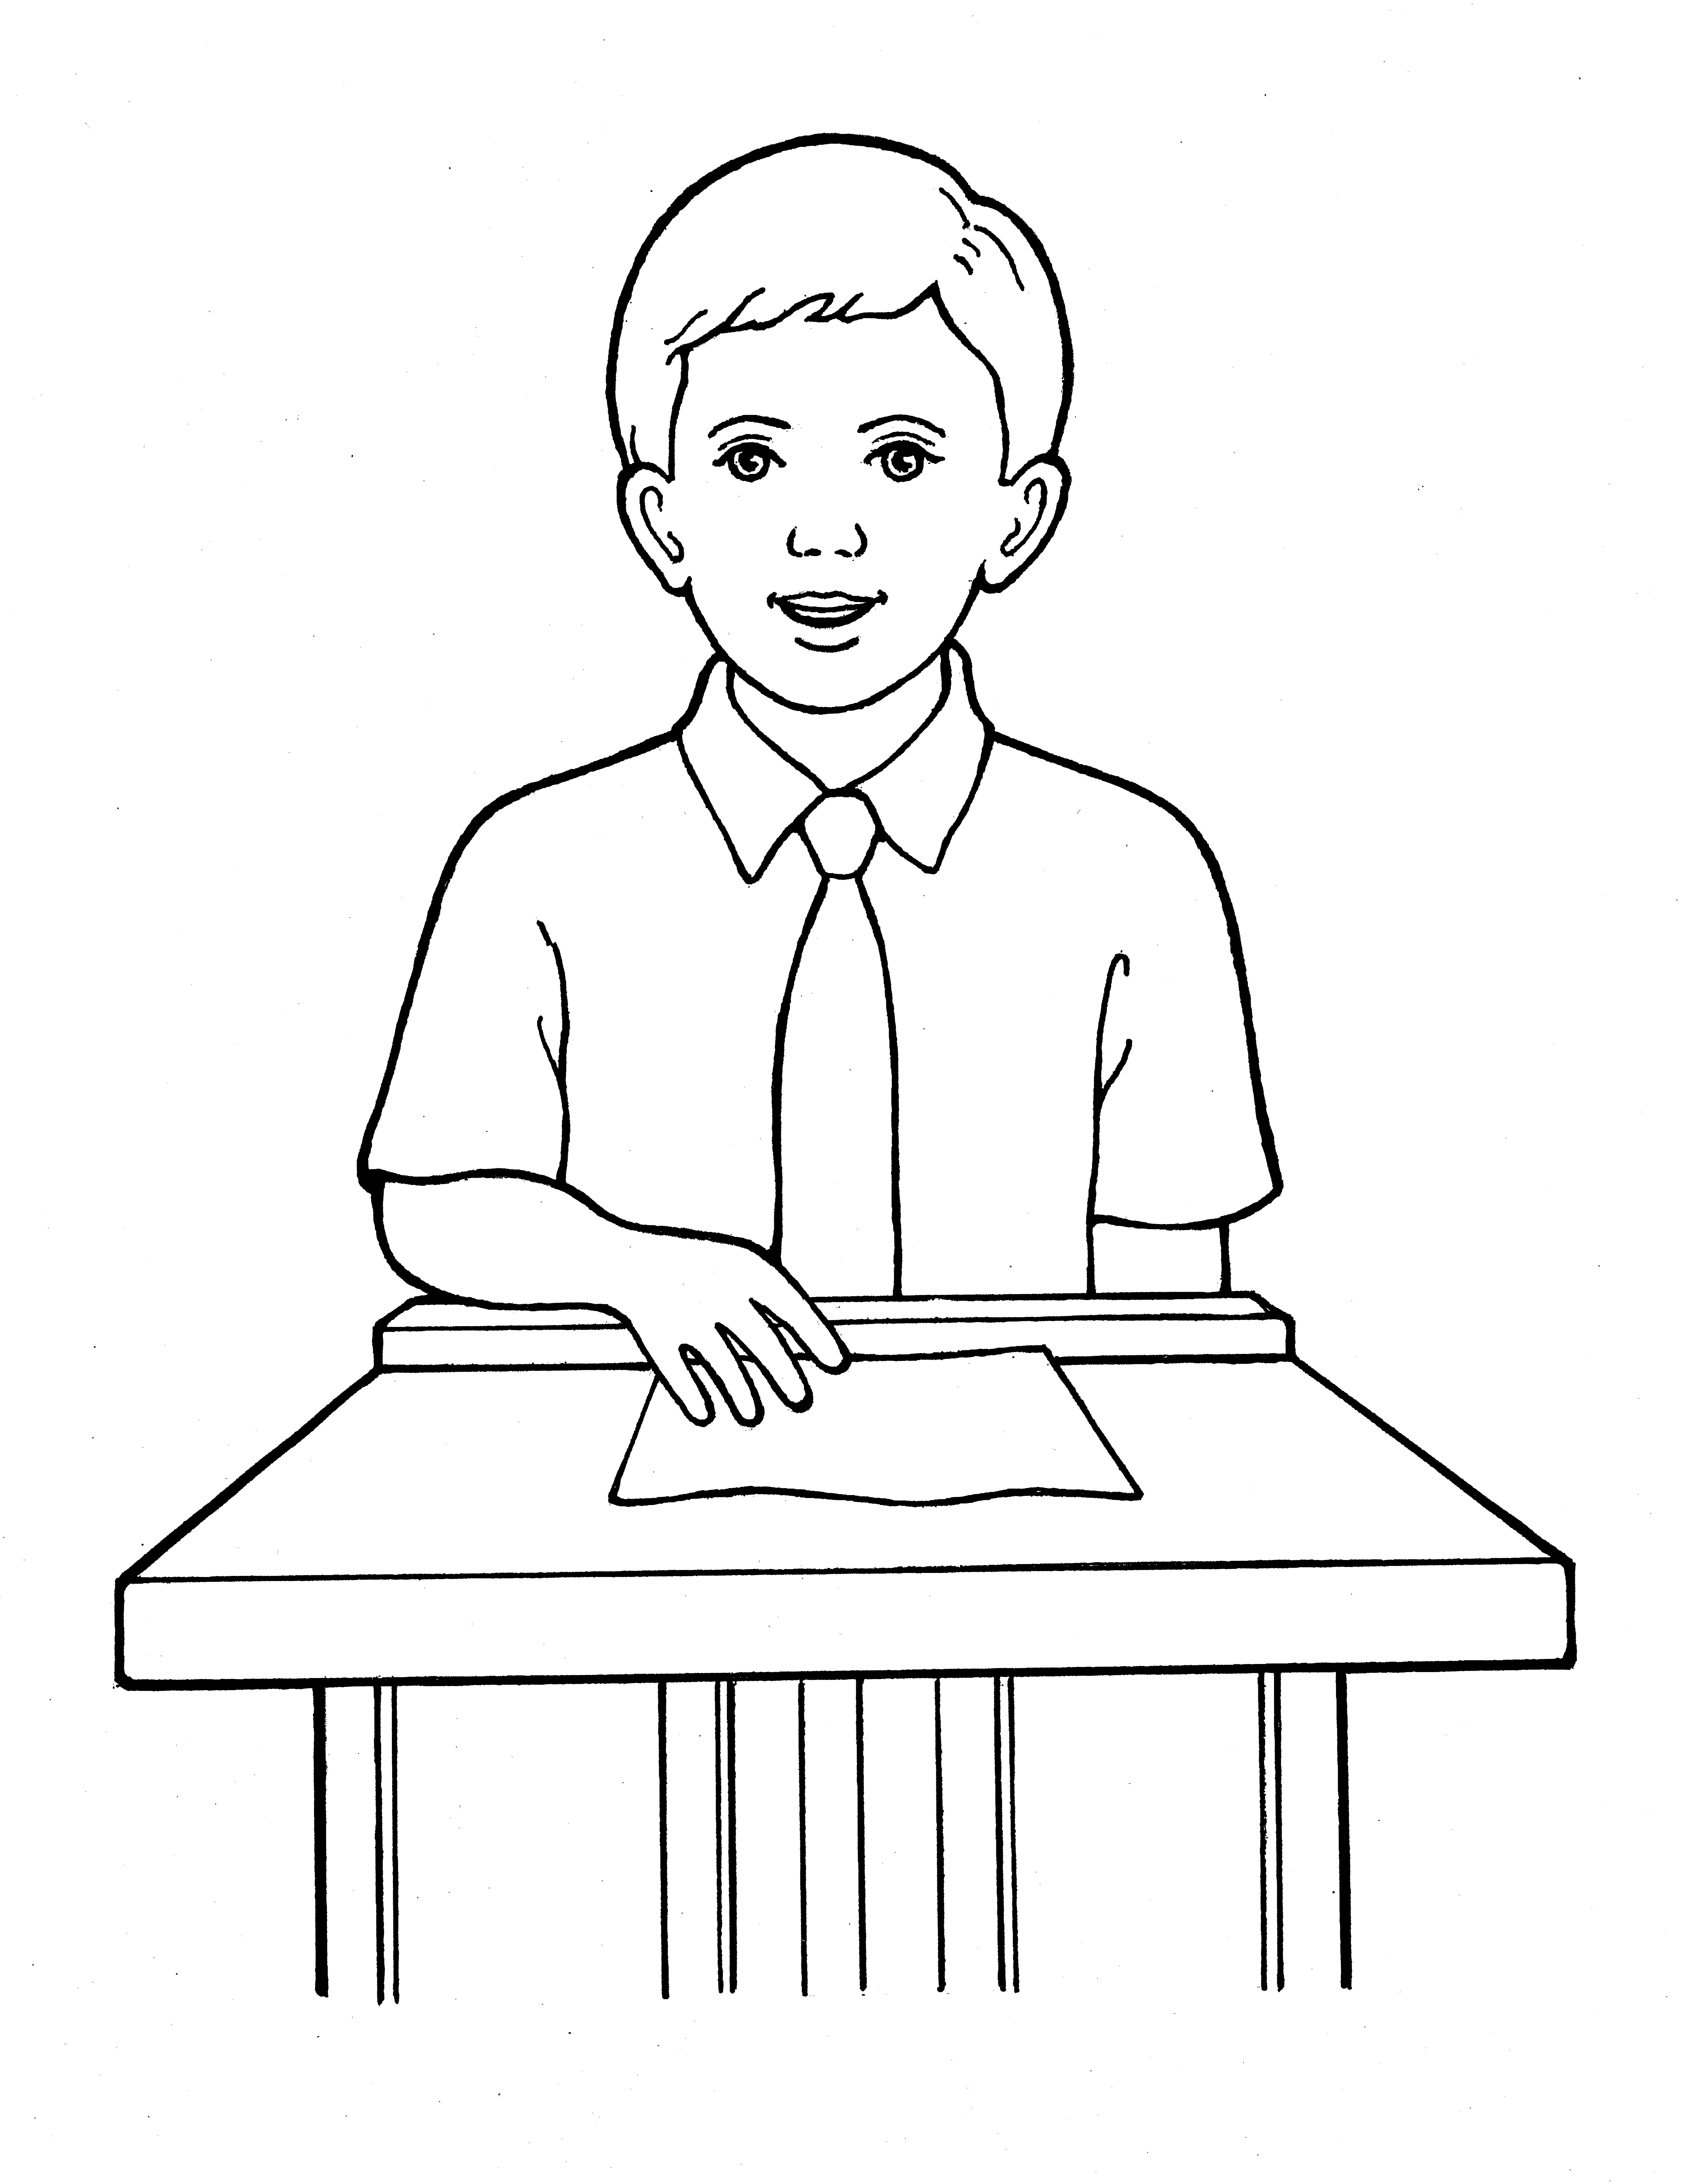 An illustration of a Primary boy standing at a podium to give a talk.